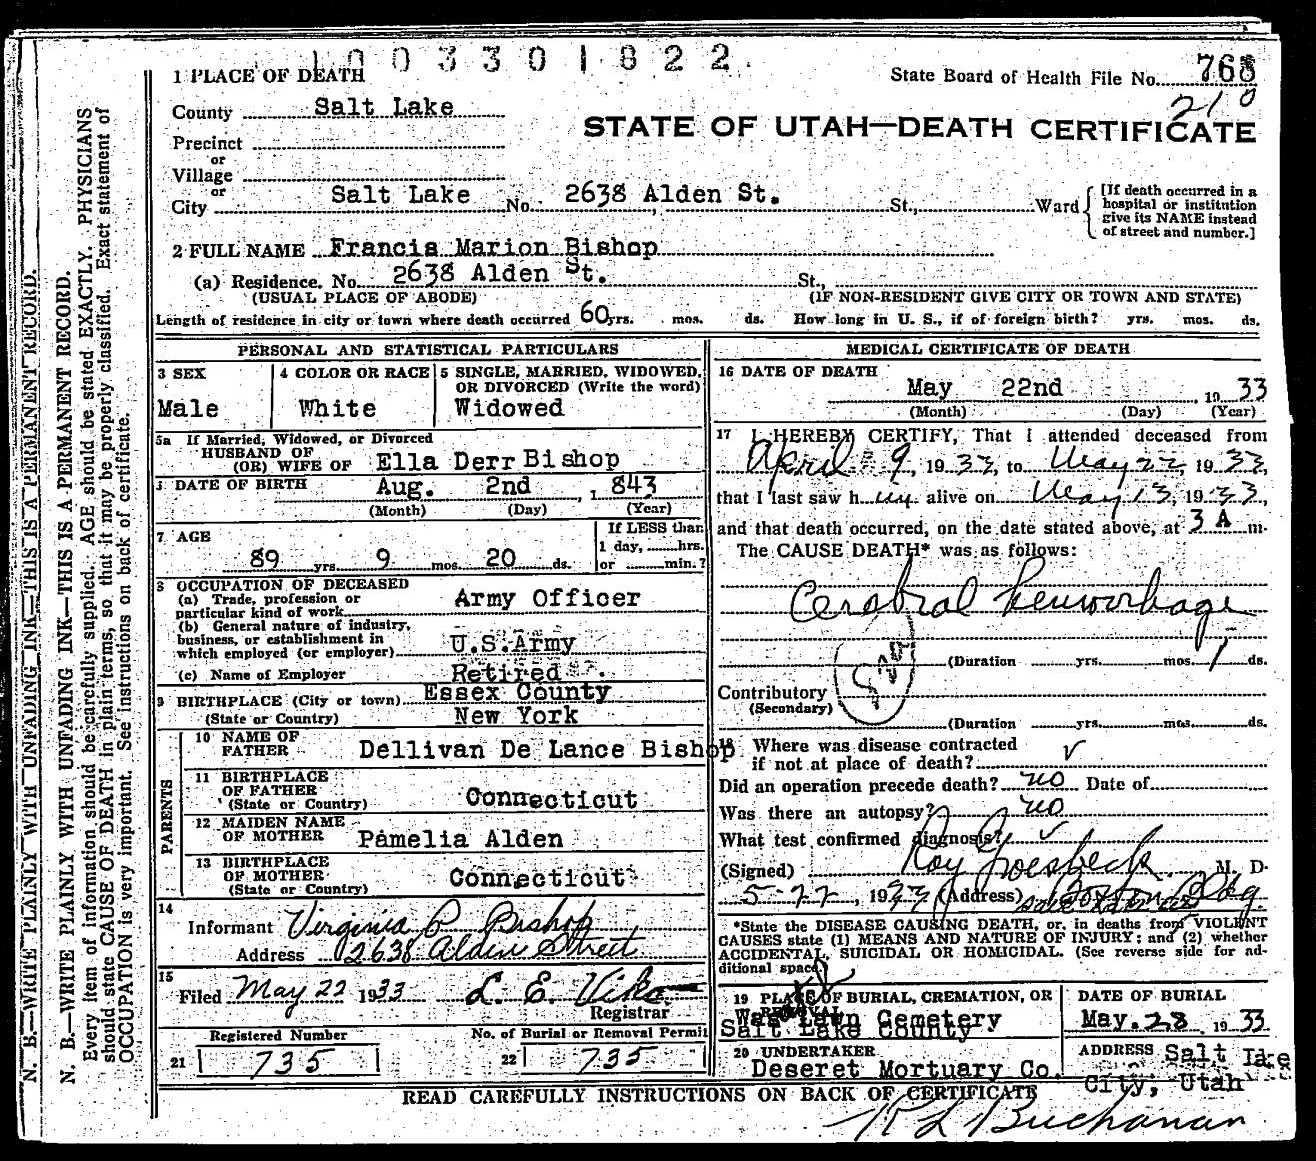 death certificate of francis marion bishop